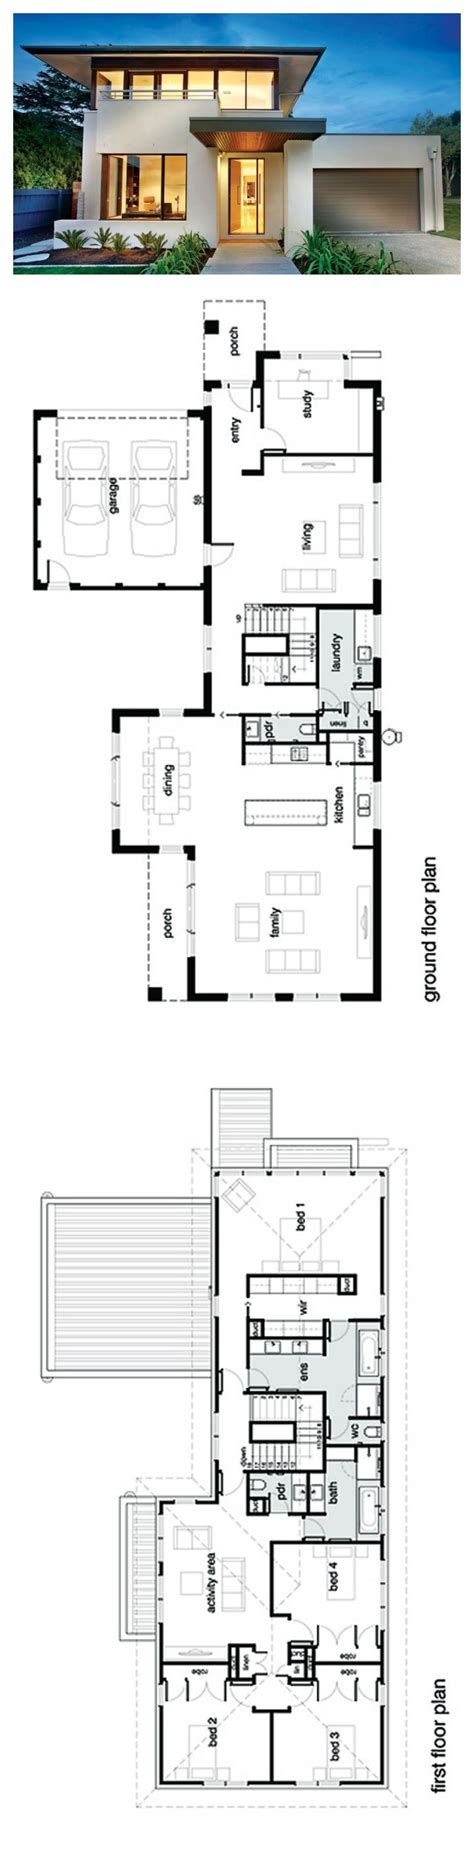 floor plans for small houses modern best 25 modern house plans ideas on pinterest modern floor plans modern house